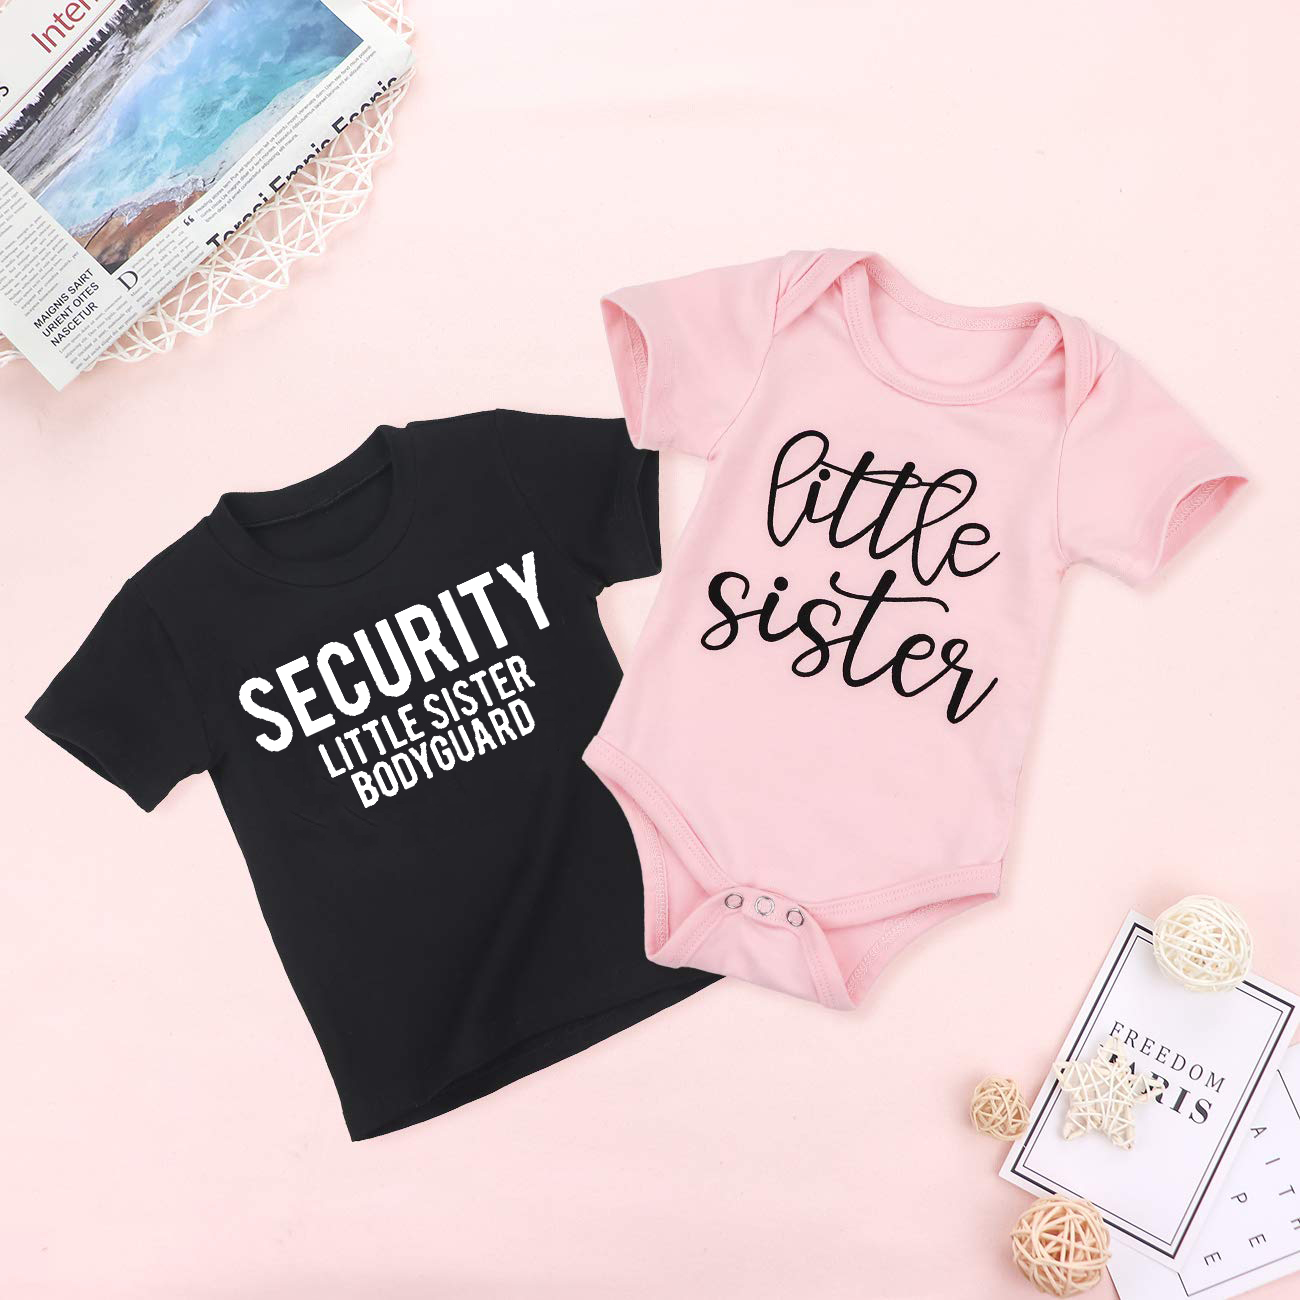 Security Little Sister Bodyguard Kids Shirt Little Sister Big Brother Shirts Little Sister Tops Sibling Matching Tees Outfits